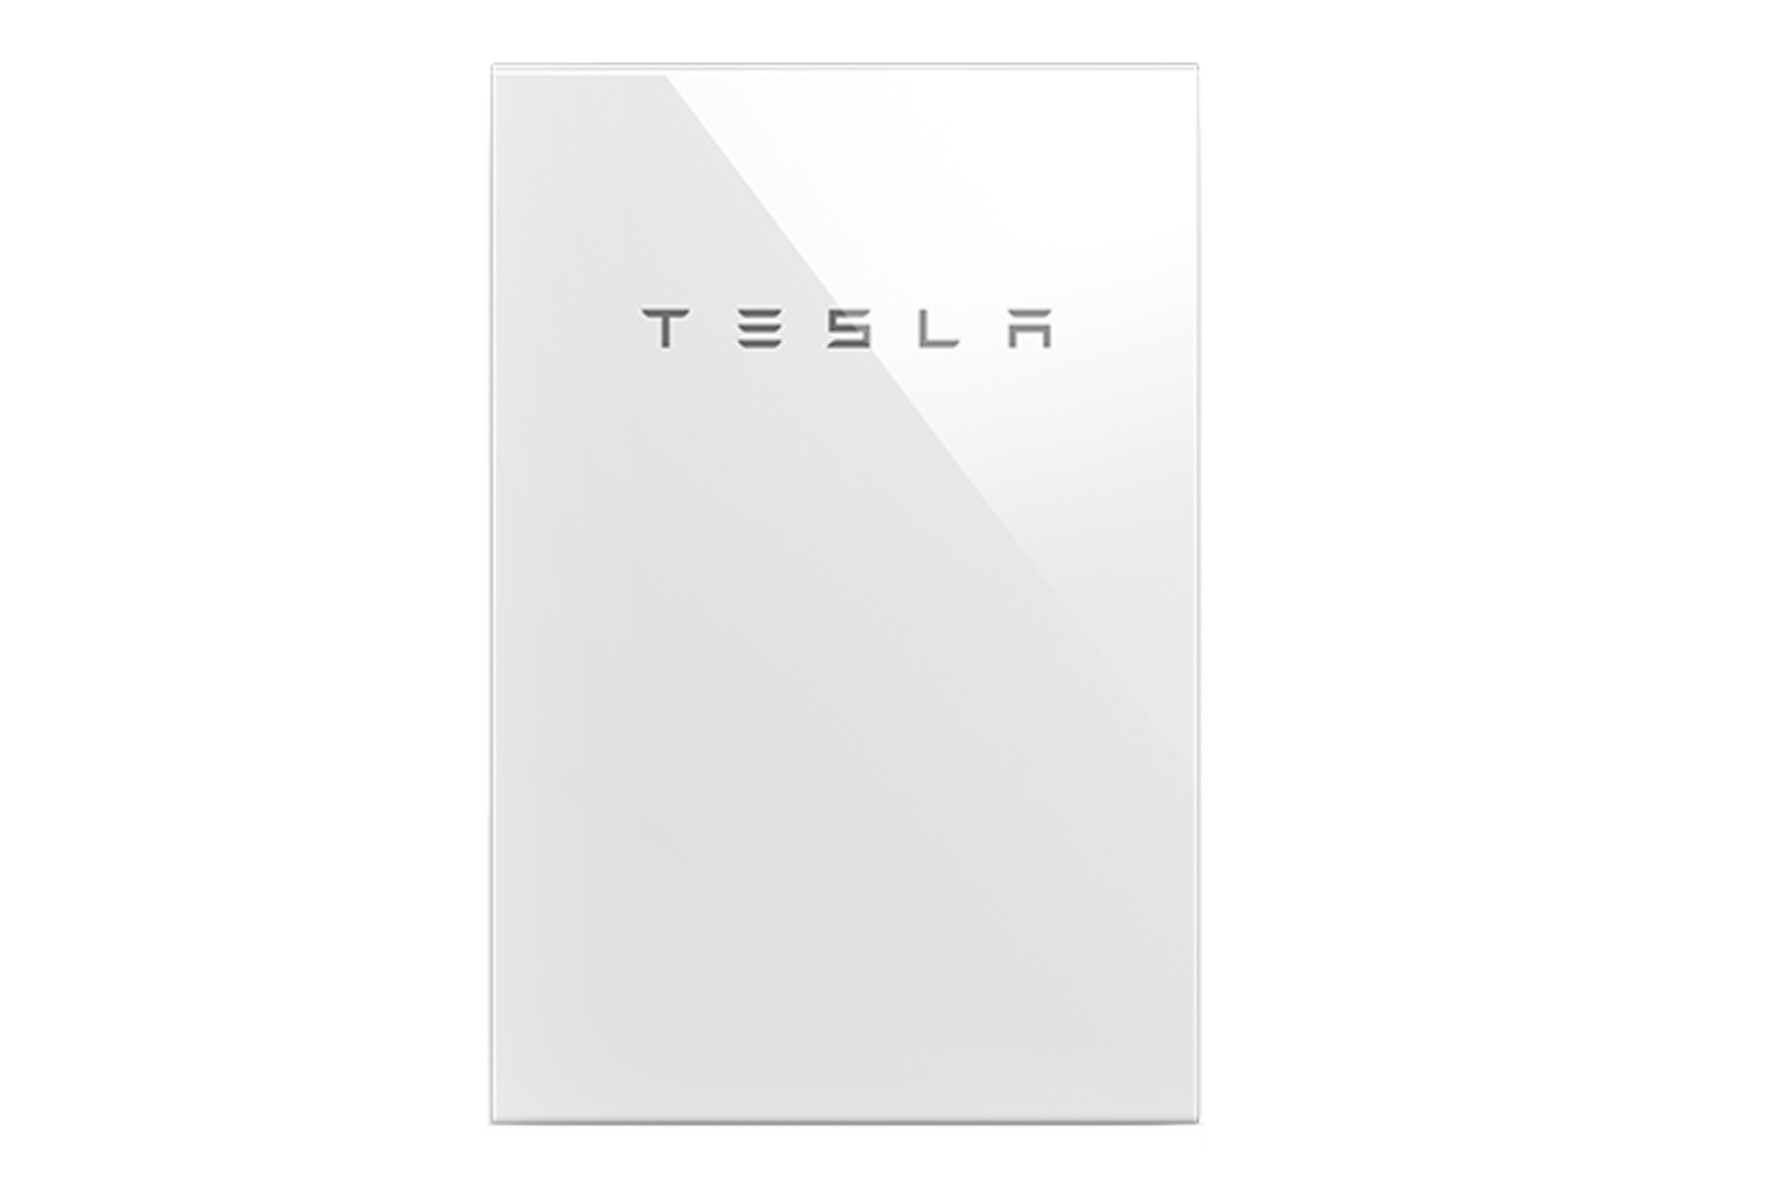 - Coming Soon to SolahartOn 29th October 2016, Tesla announced that the second generation Powerwall is coming soon – Powerwall 2Featuring more than twice the energy storage capacity of the original version with 13.5 kWh capacity, Powerwall 2 is a battery for homes and small businesses that stores energy free from the sun and delivers clean, reliable electricity when the sun is not shining. Compact, scalable and with a built-in inverter, installation is simple, either indoor or outdoor.Production for Powerwall 2 begins soon at the Tesla Gigafactory in Nevada, with installations in Australia to follow this year.